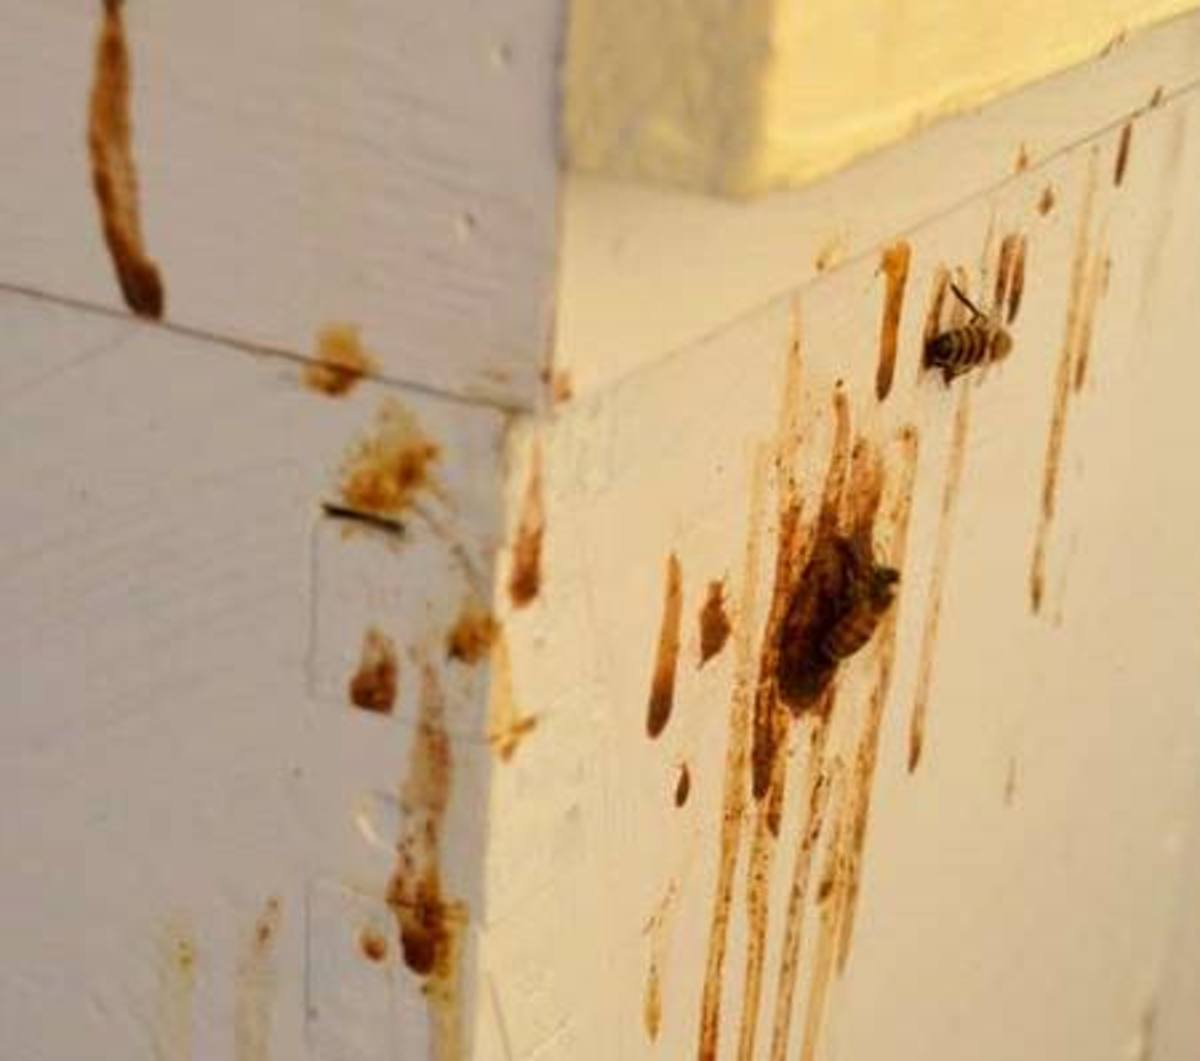 Brown streaks on the entrance to your hive may mean your bees have dysentery or nosema.